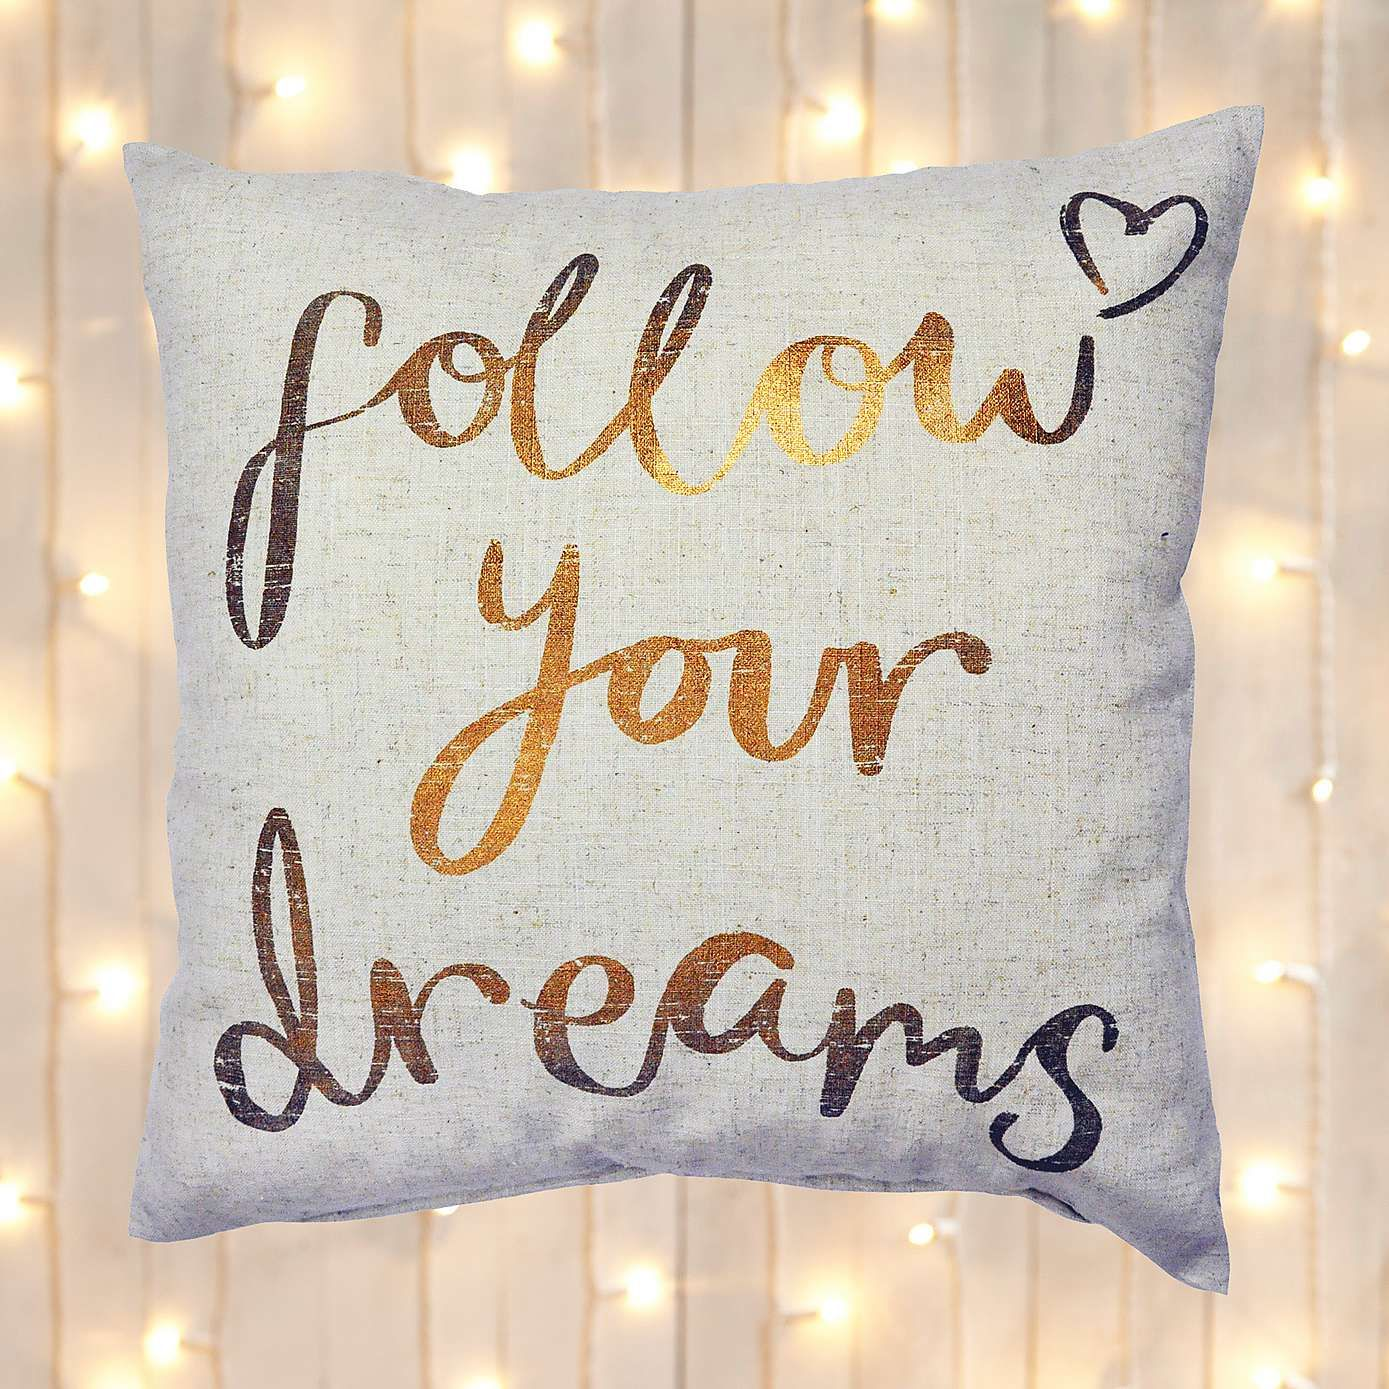 Follow Your Dreams Cushion Dunelm House Buys